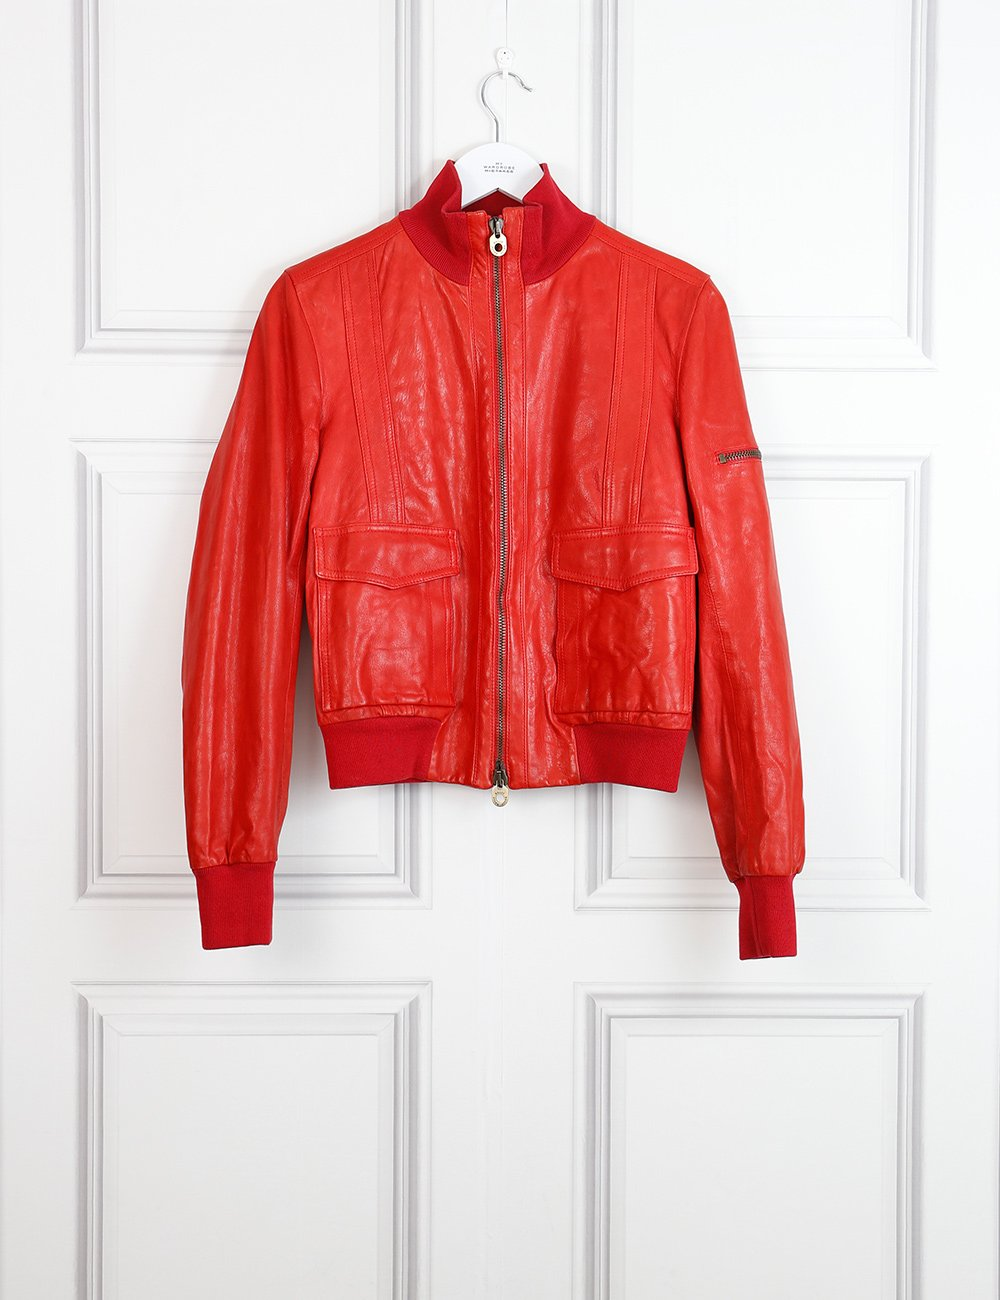 Bally red leather jacket with pockets at the front 12 UK- My Wardrobe Mistakes